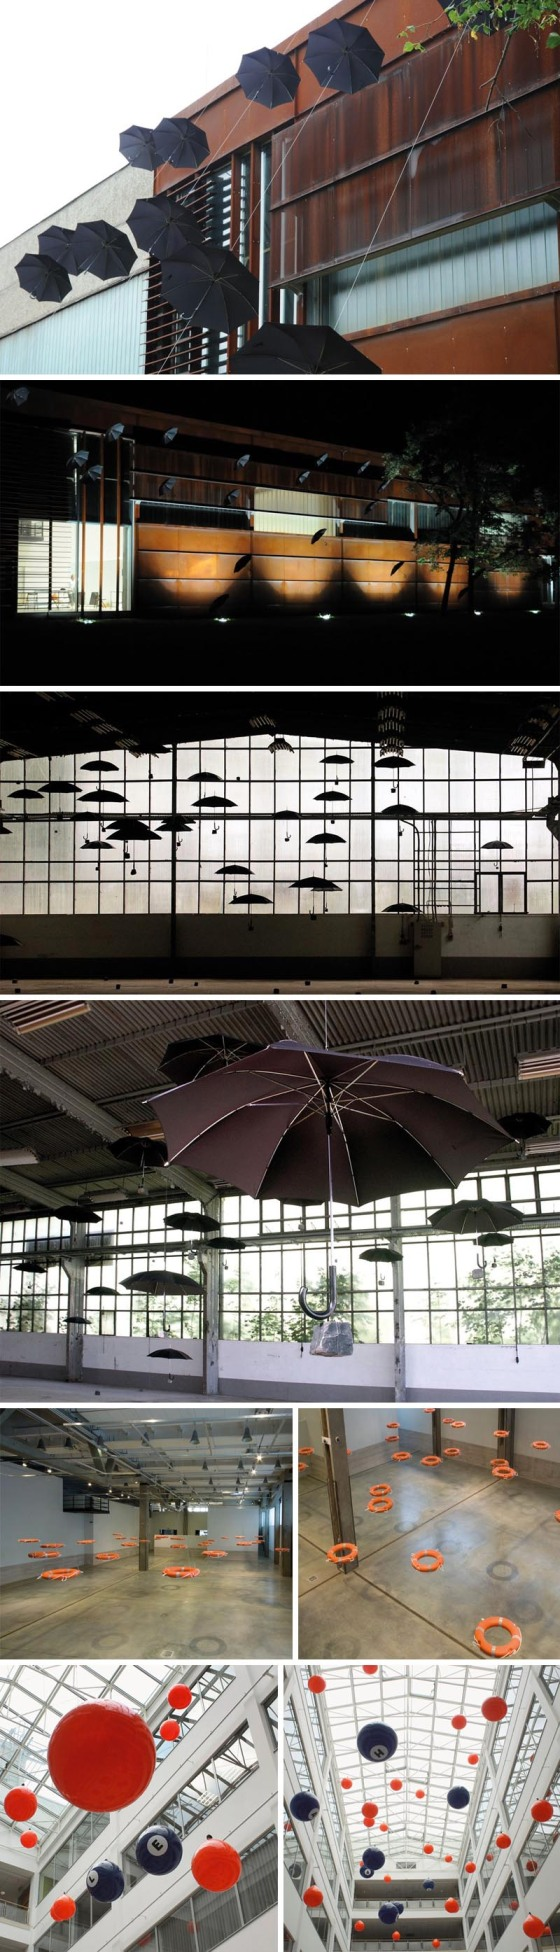 Ottó Vincze, Hungarian contemporary Art, Installations with flying umbrellas, Life preservers, balloons, cool installations